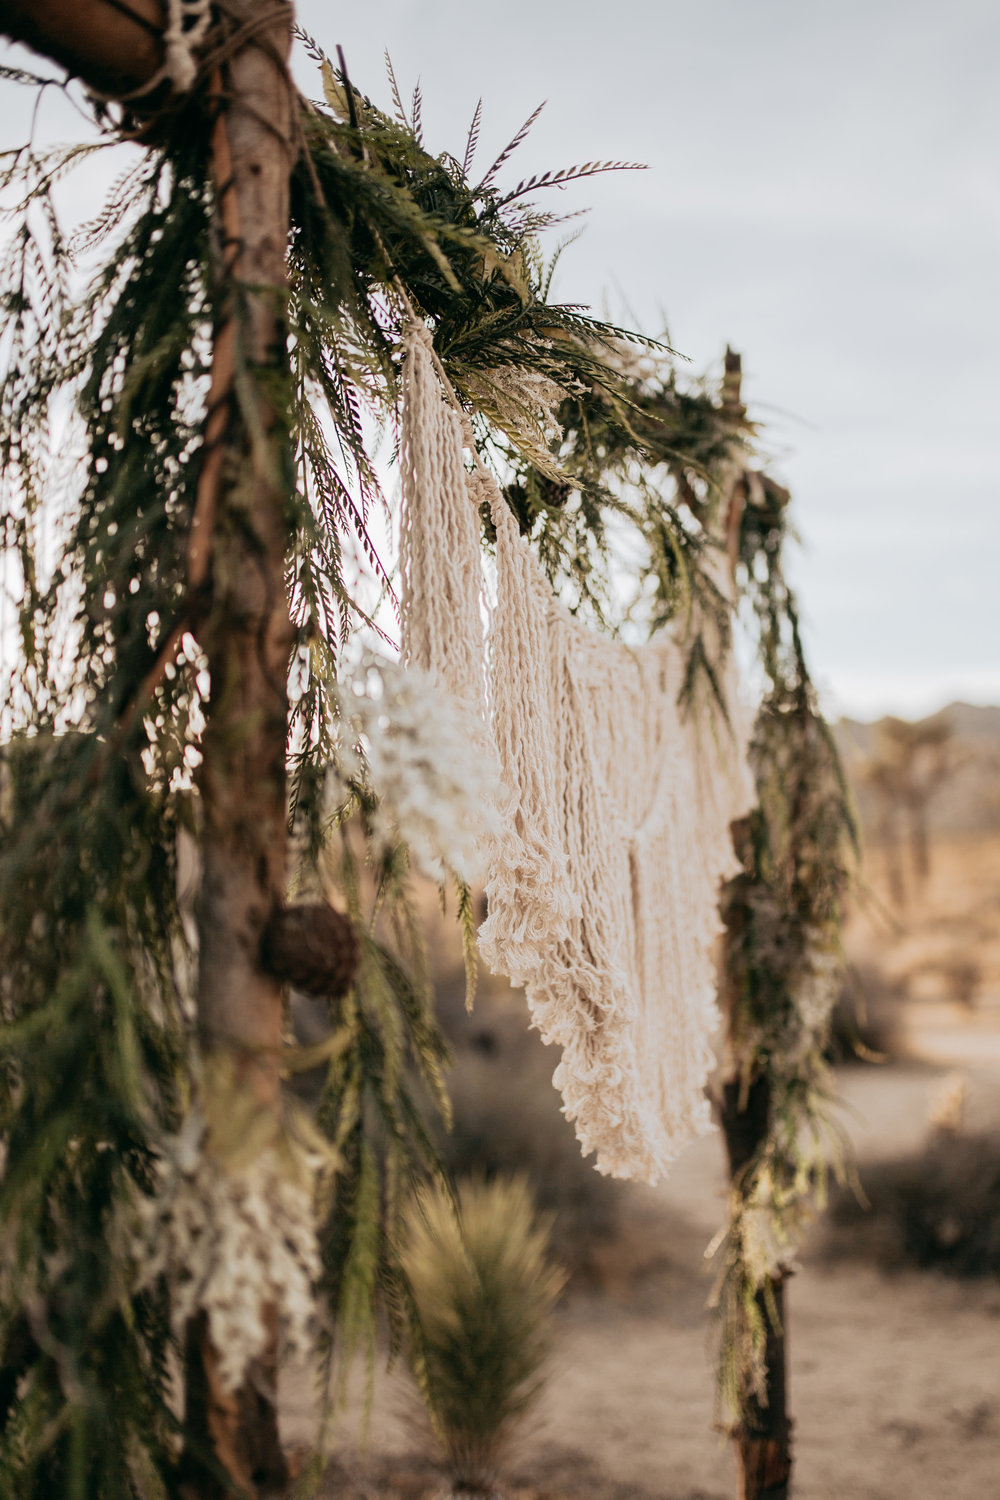 palmsprings_joshuatree_california_wedding_photographer-2.jpg